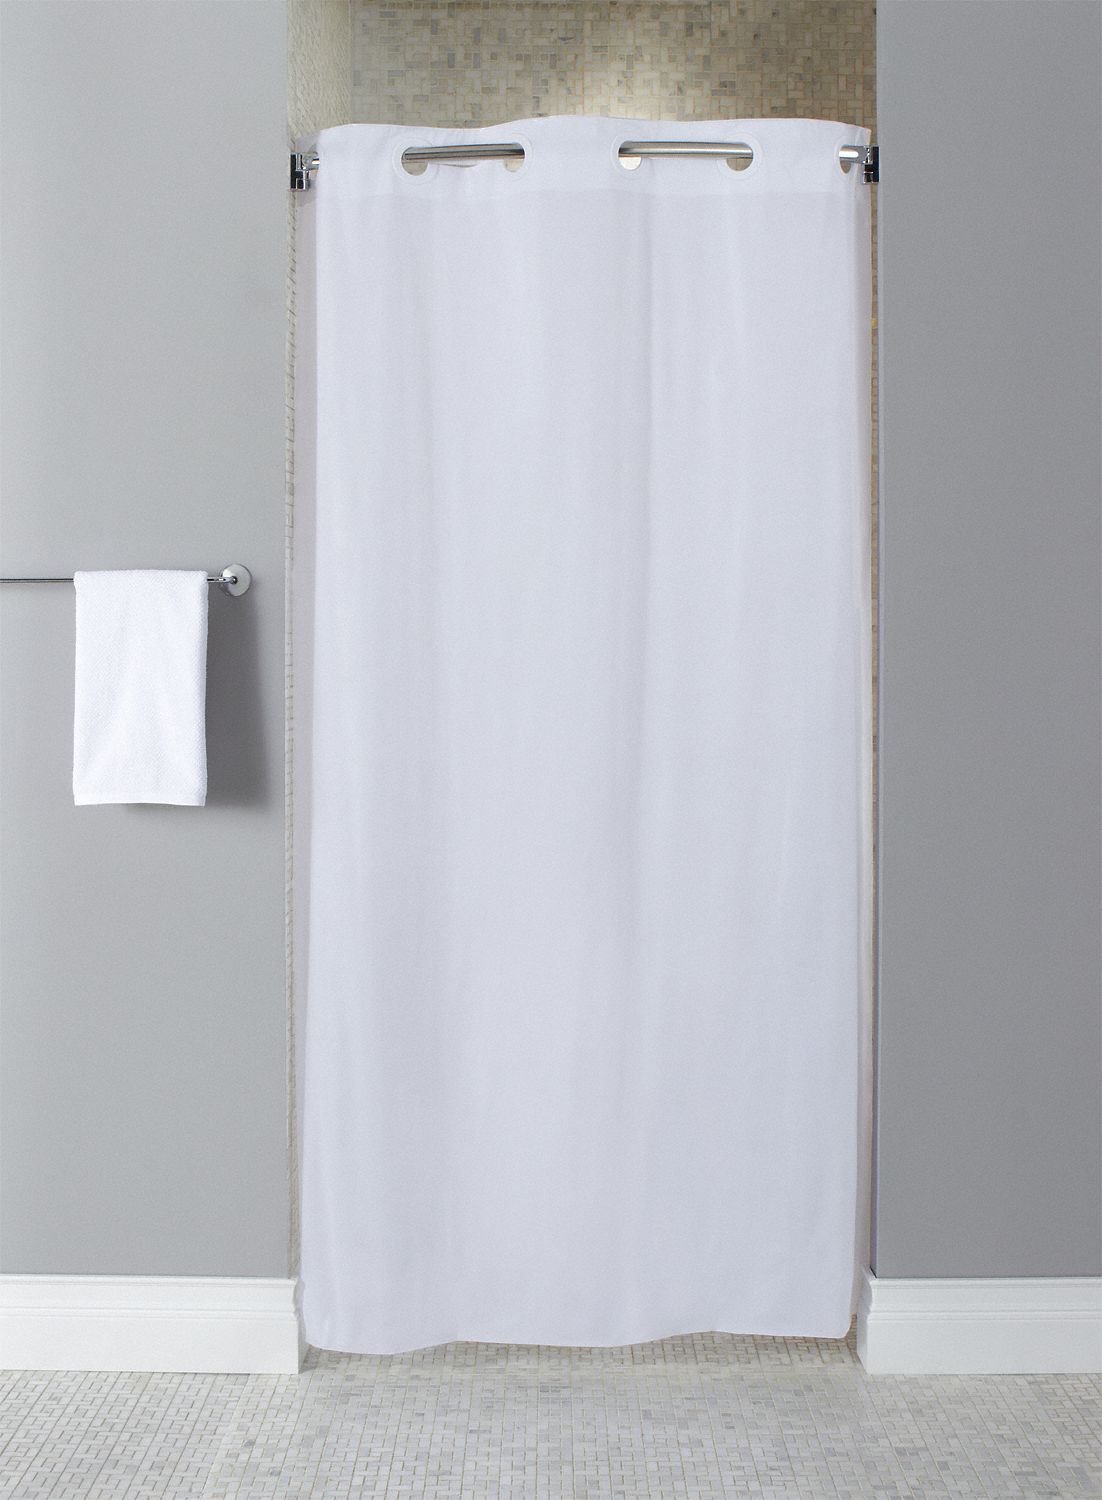 Hookless shower curtain with snap liner - Hookless Shower Curtain White 74 In L 42 In W 46y263 Hbh10ga014274 Grainger